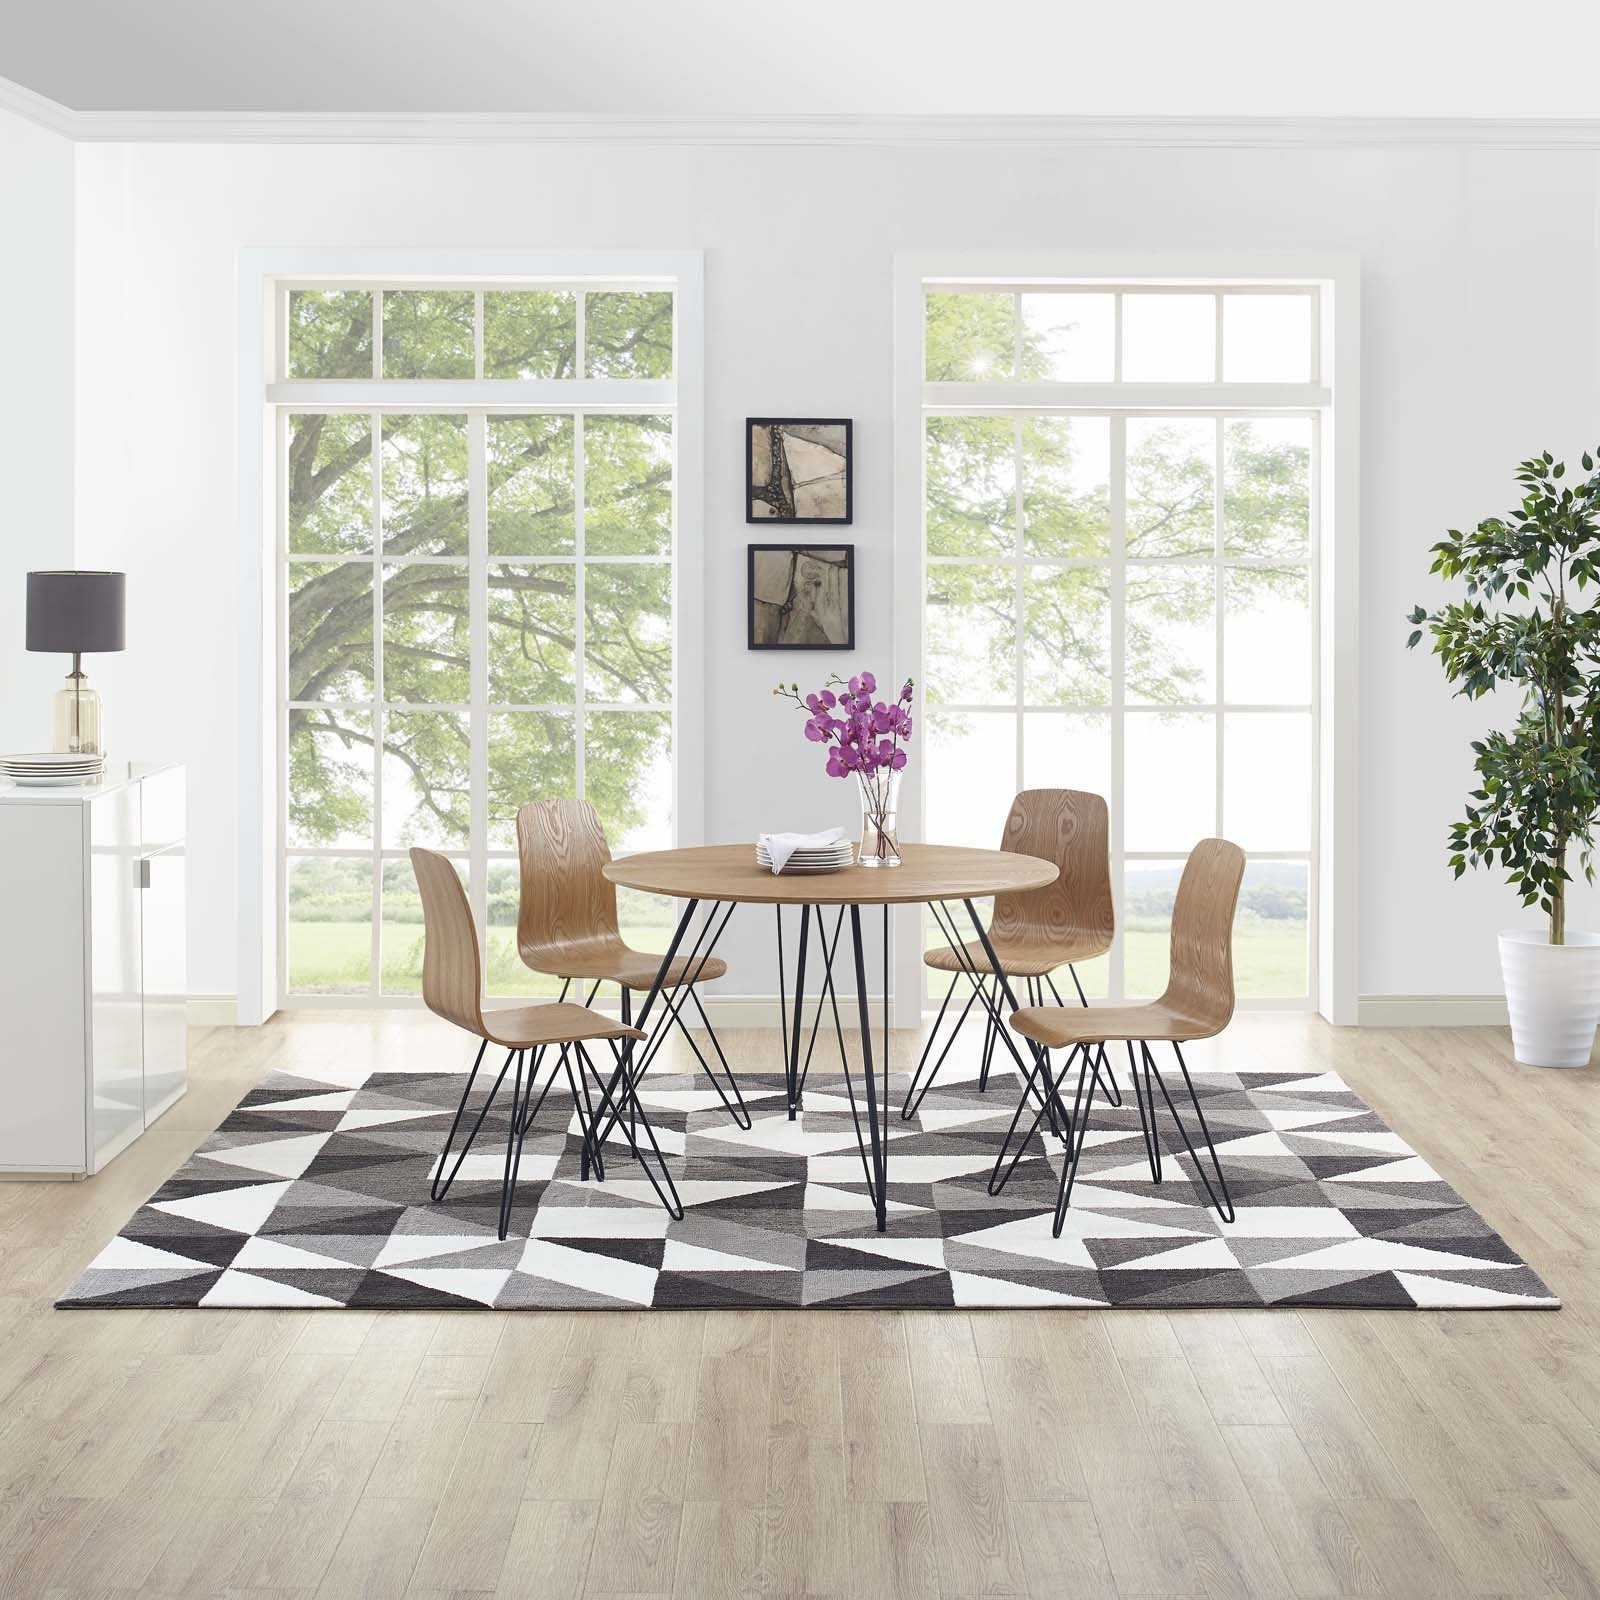 Kahula Geometric Triangle Mosaic 8x10 Area Rug in  Black, Gray and White Product Image